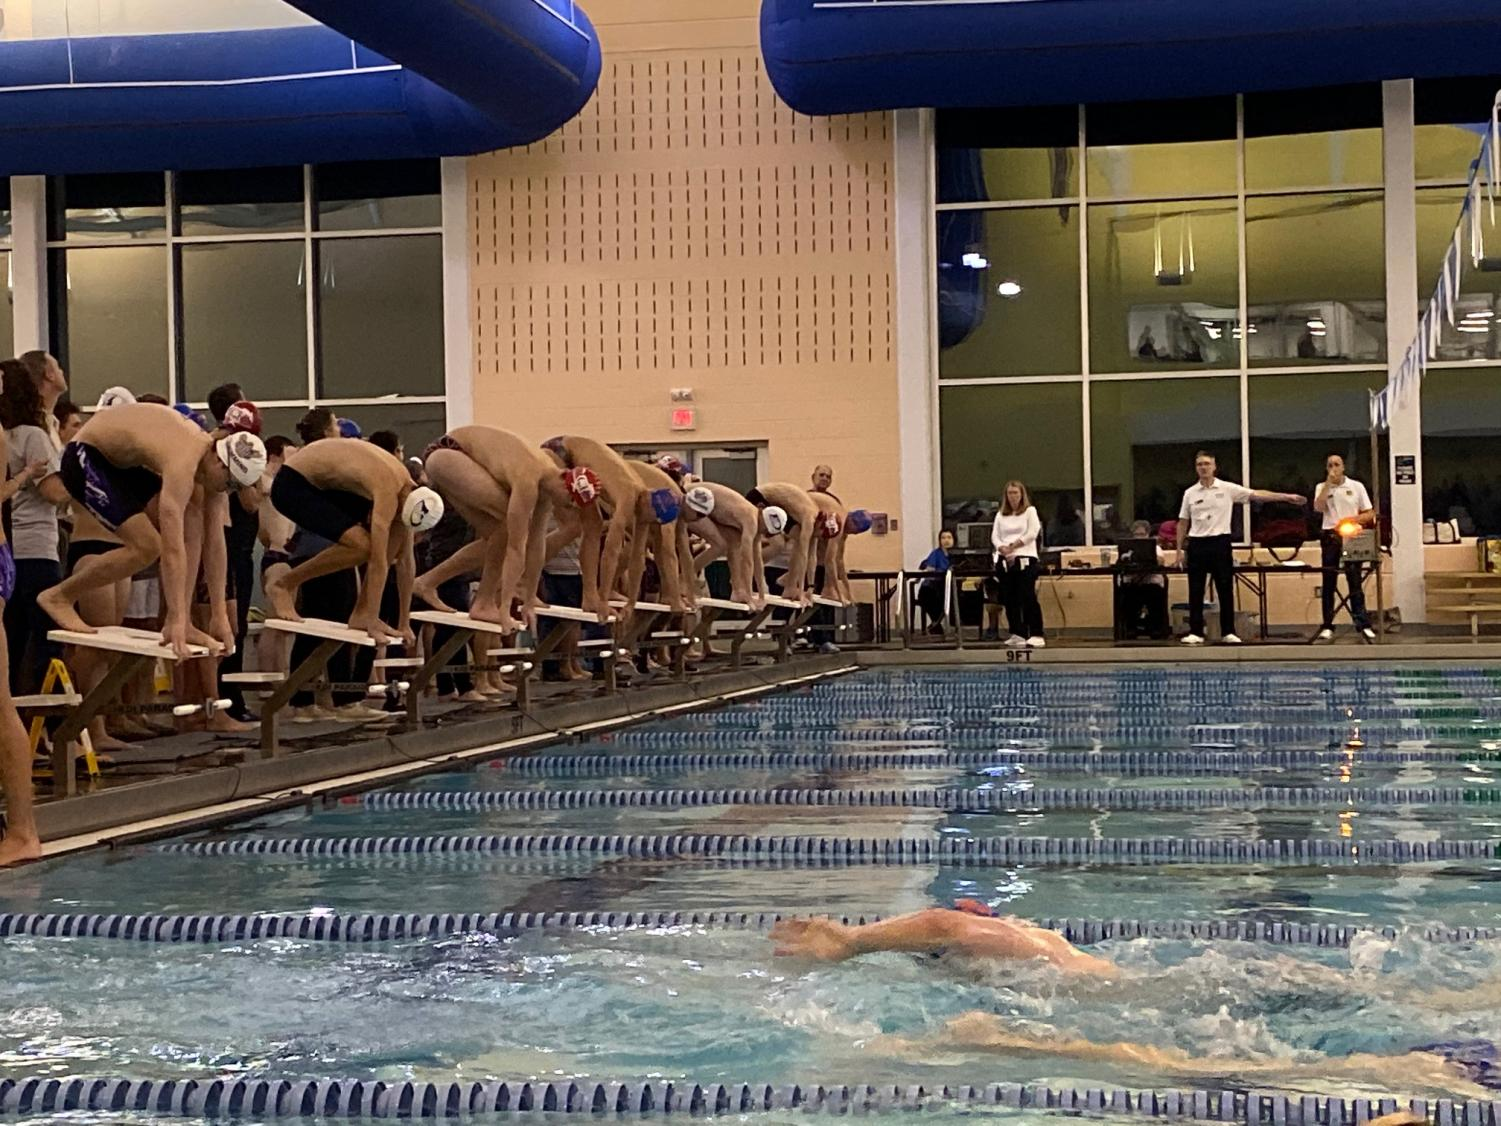 Swimmers+take+their+mark+and+prepare+to+race+at+the+Smithfield+Aquatic+Center+Photo+courtesy+of+Jankhna+Sura